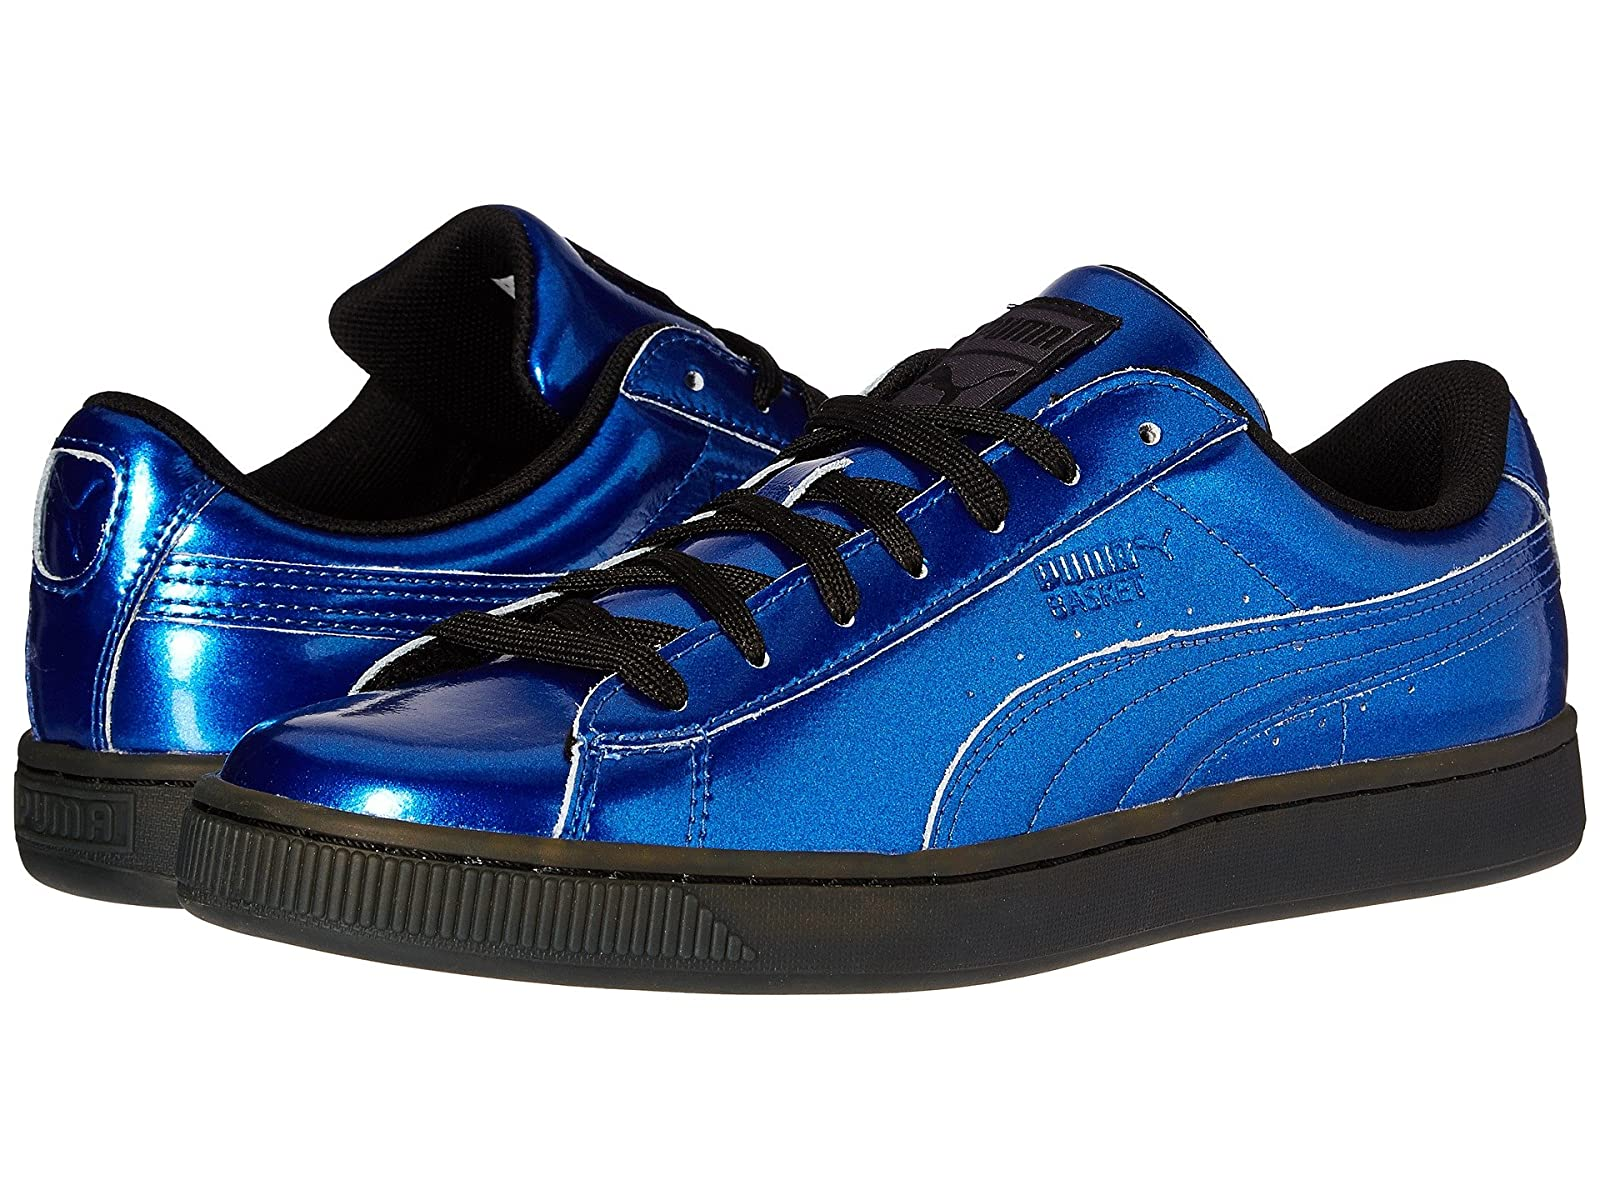 PUMA Basket Classic ExplosiveCheap and distinctive eye-catching shoes